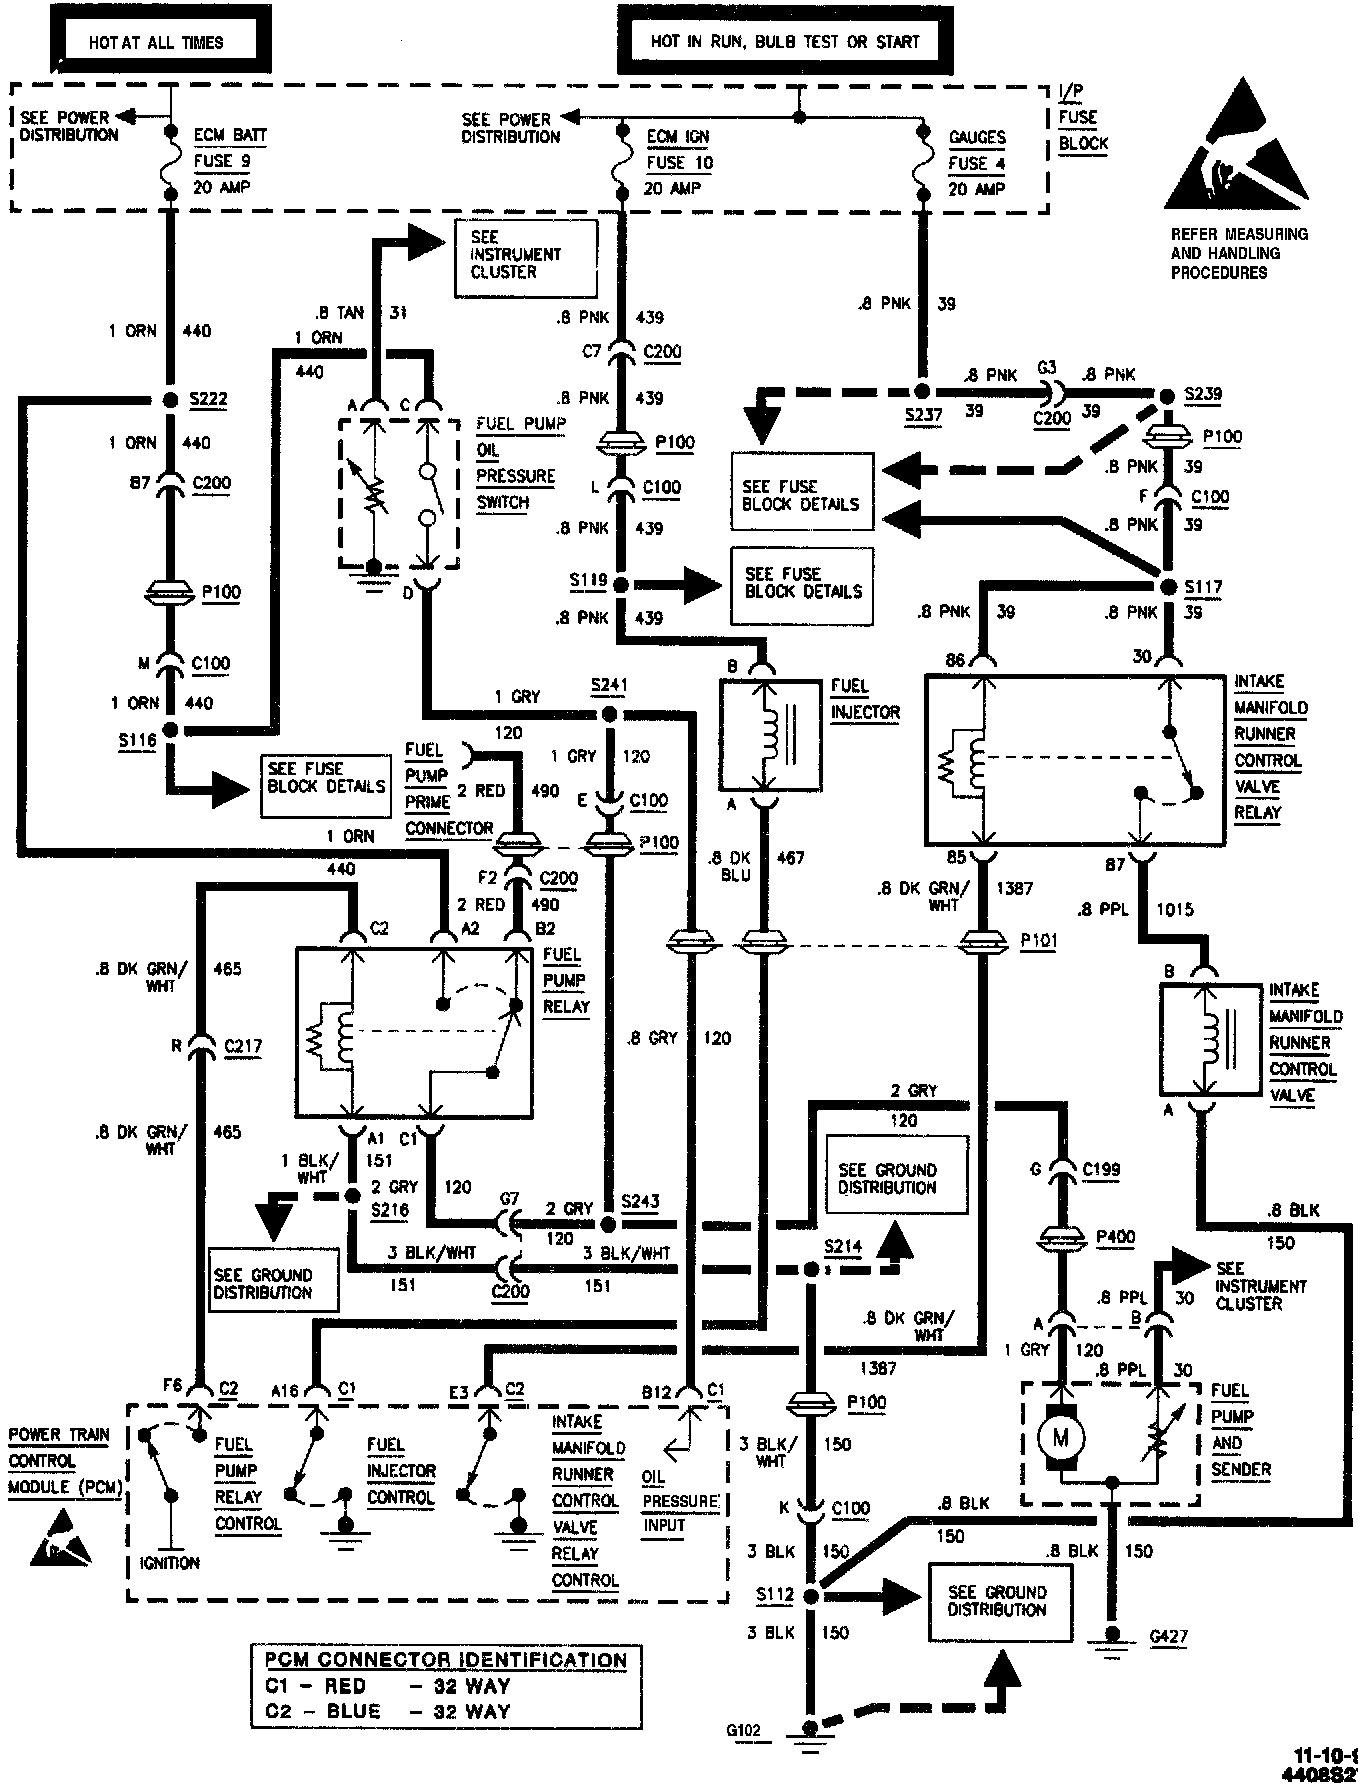 1997 chevy s10 wiring diagram wiring diagram all data 2001 Toyota T100 96 s10 wiring harness diagram wiring diagram data s10 wiring schematic 1997 chevy s10 wiring diagram